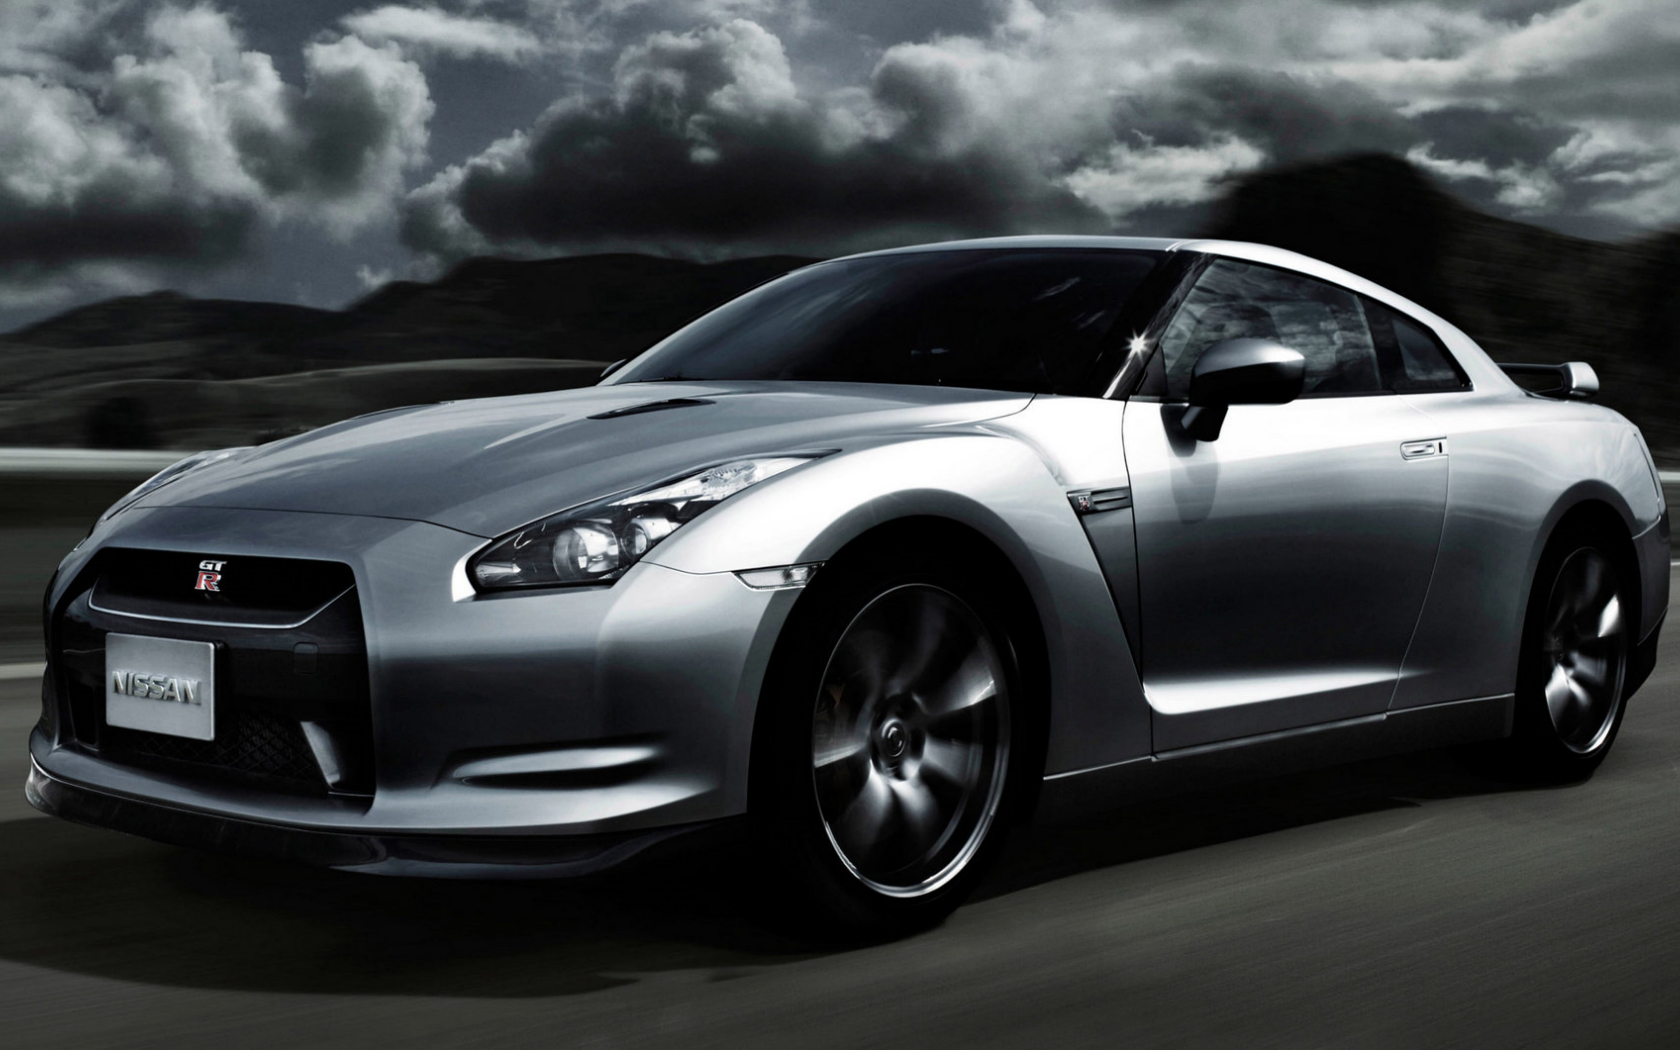 Car cars Nissan GT-R HD Wallpaper